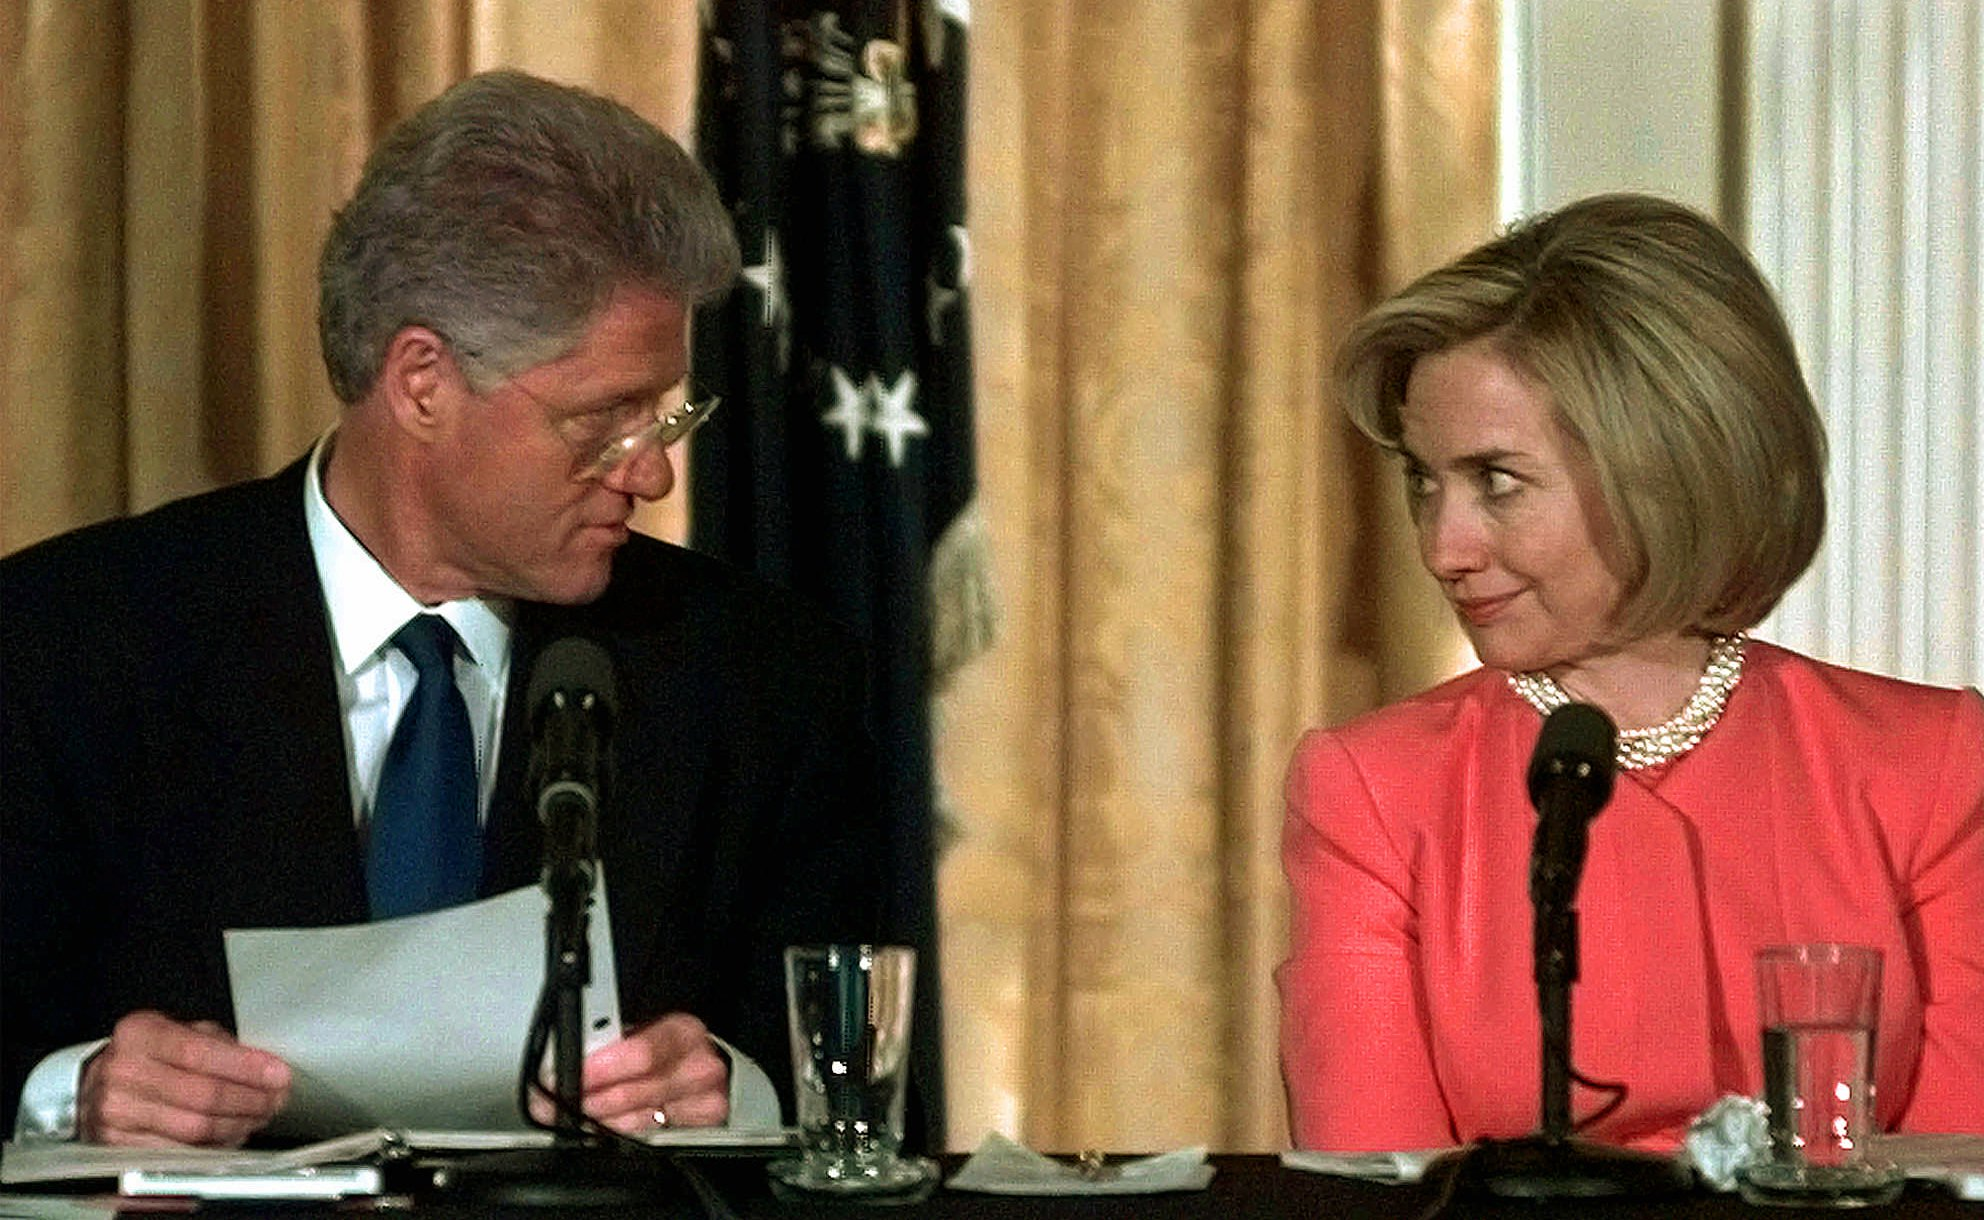 President Bill Clinton and his wife Hillary Rodham Clinton look at each other as they opened the White House Conference on Child Care Thursday Oct. 23, 1997 in the East Room of the White House.